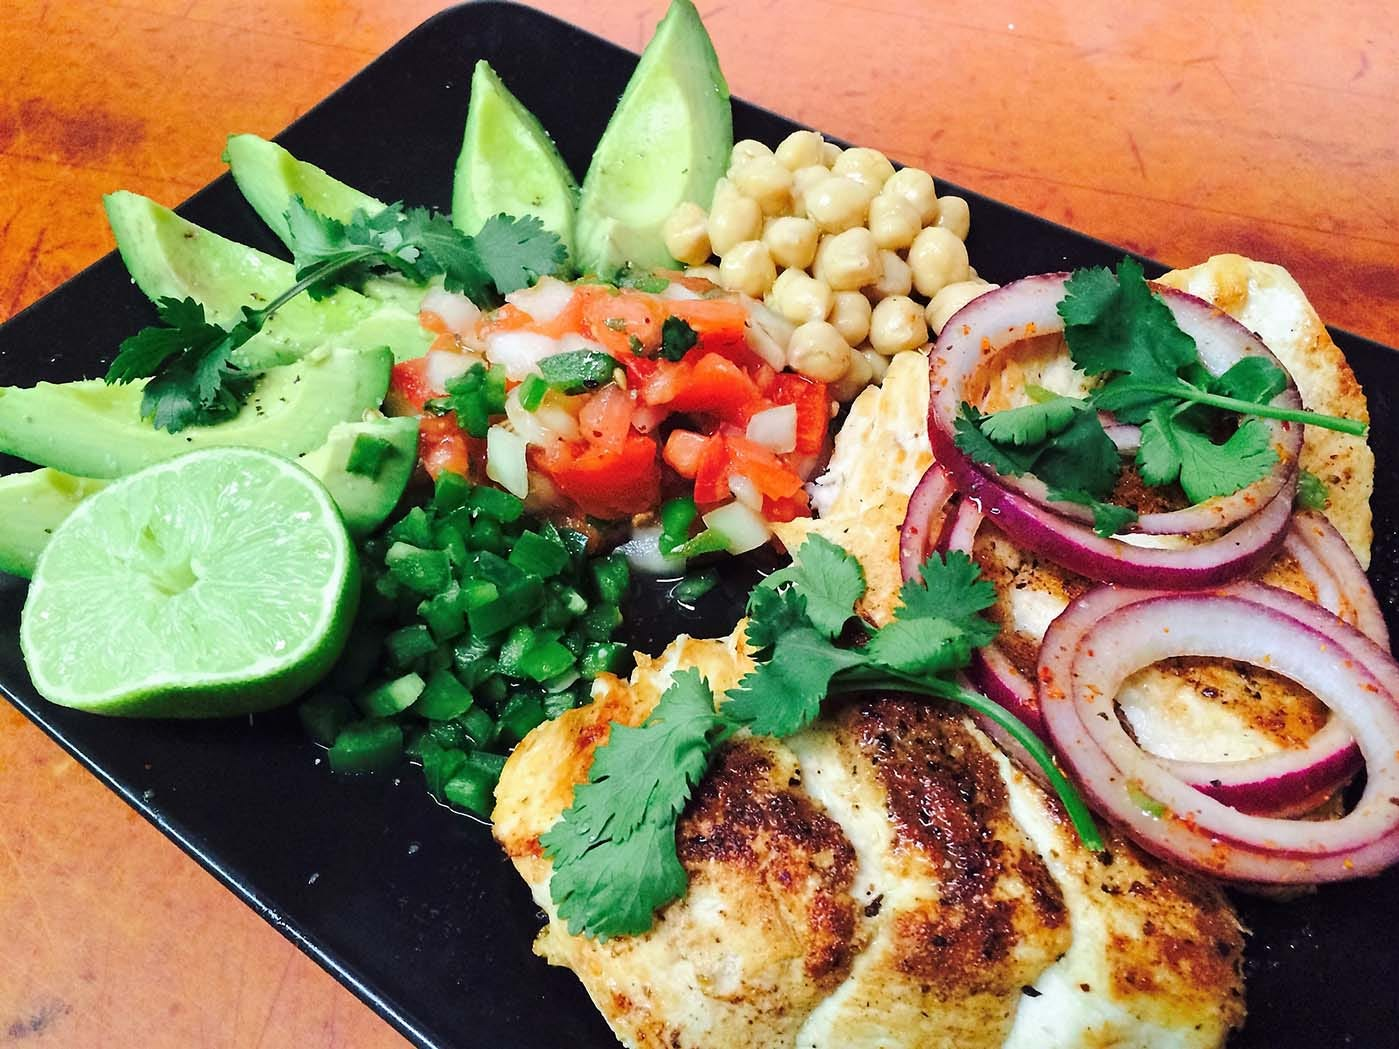 The South Beach Chicken  and Avocado salad, at only 400 calories, is a favorite at Creekside American Bistro.